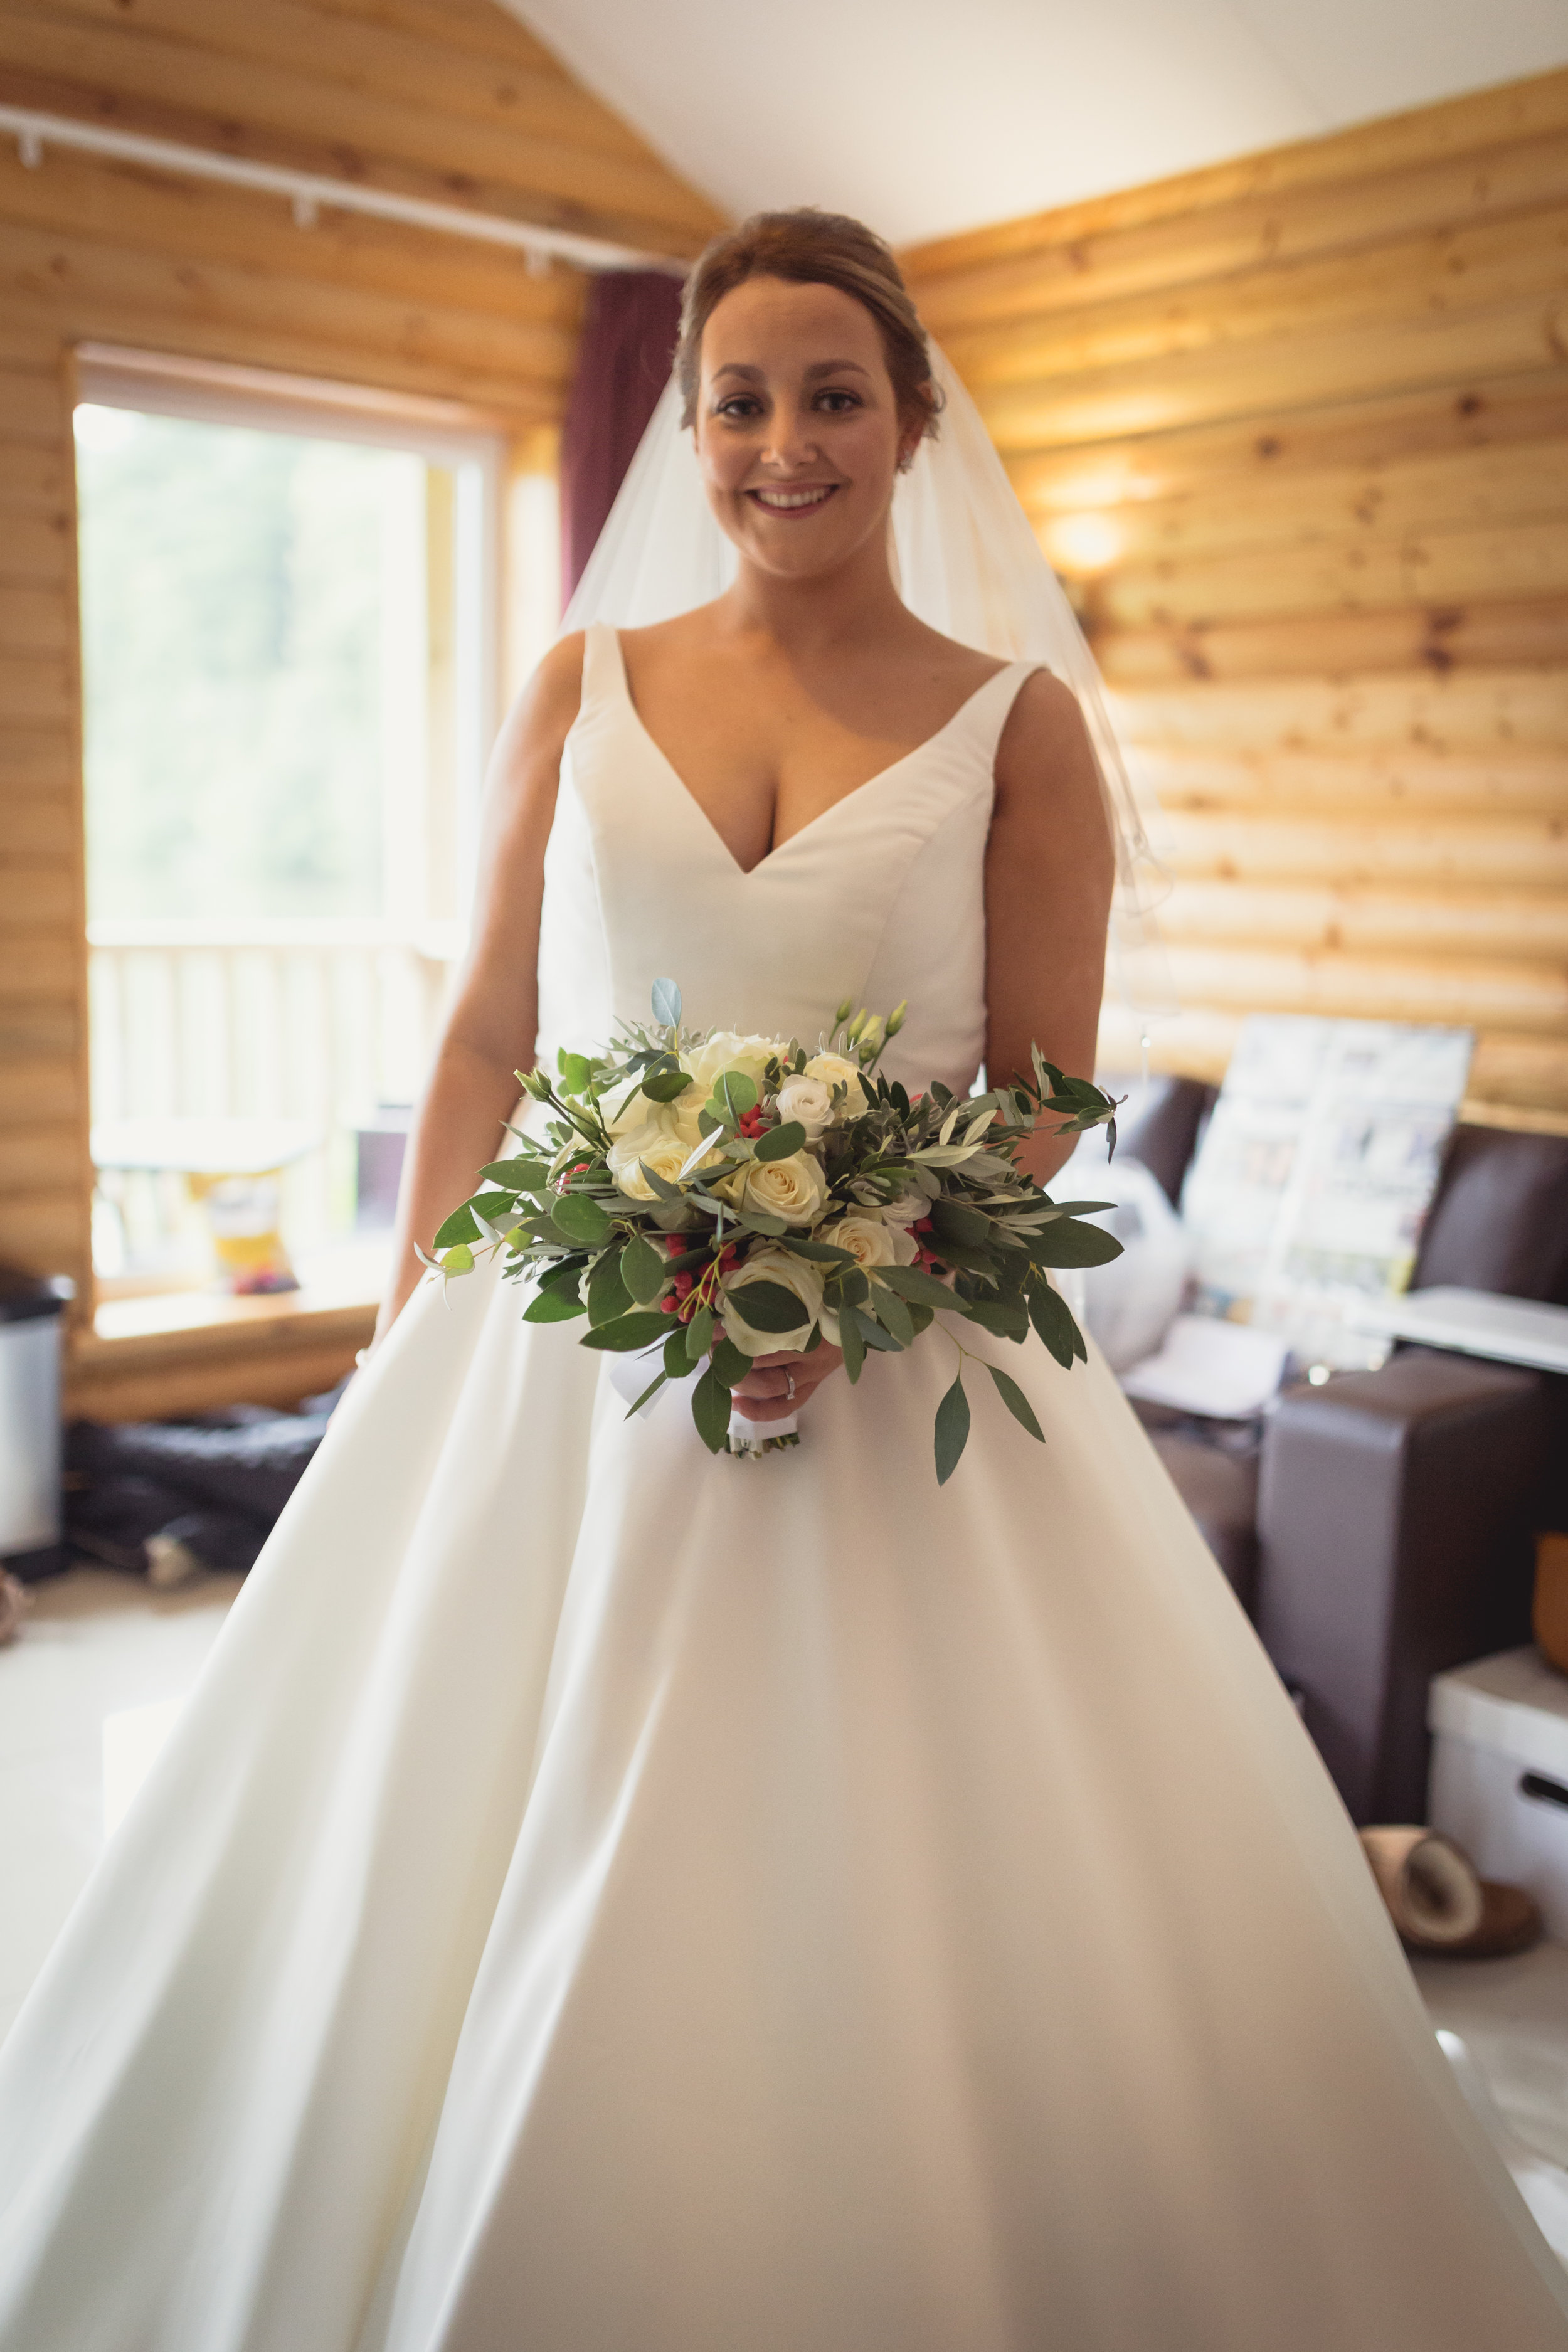 Bride holding her wedding flowers preparing to leave for the ceremony at a wedding in South Wales